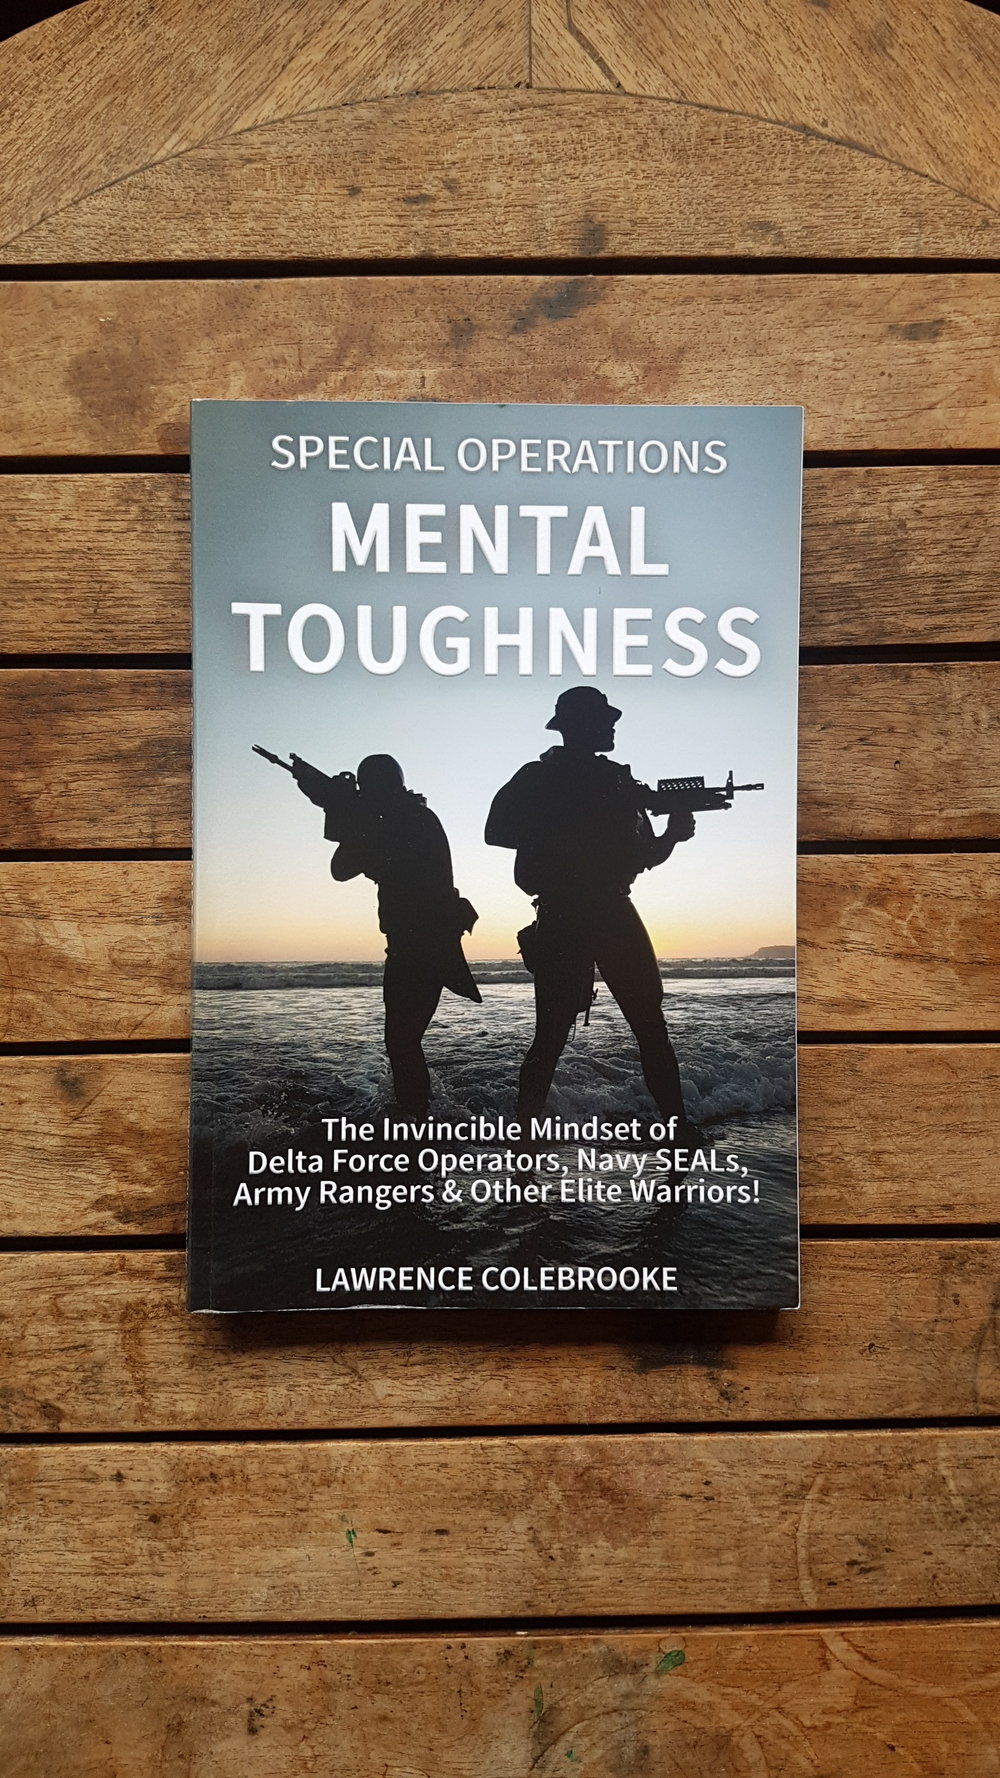 Special Operations Mental Toughness: The Invincible Mindset of Delta Force Operators, Navy SEALs, Army Rangers & Other Elite Warriors!   by Lawrence Colebrooke